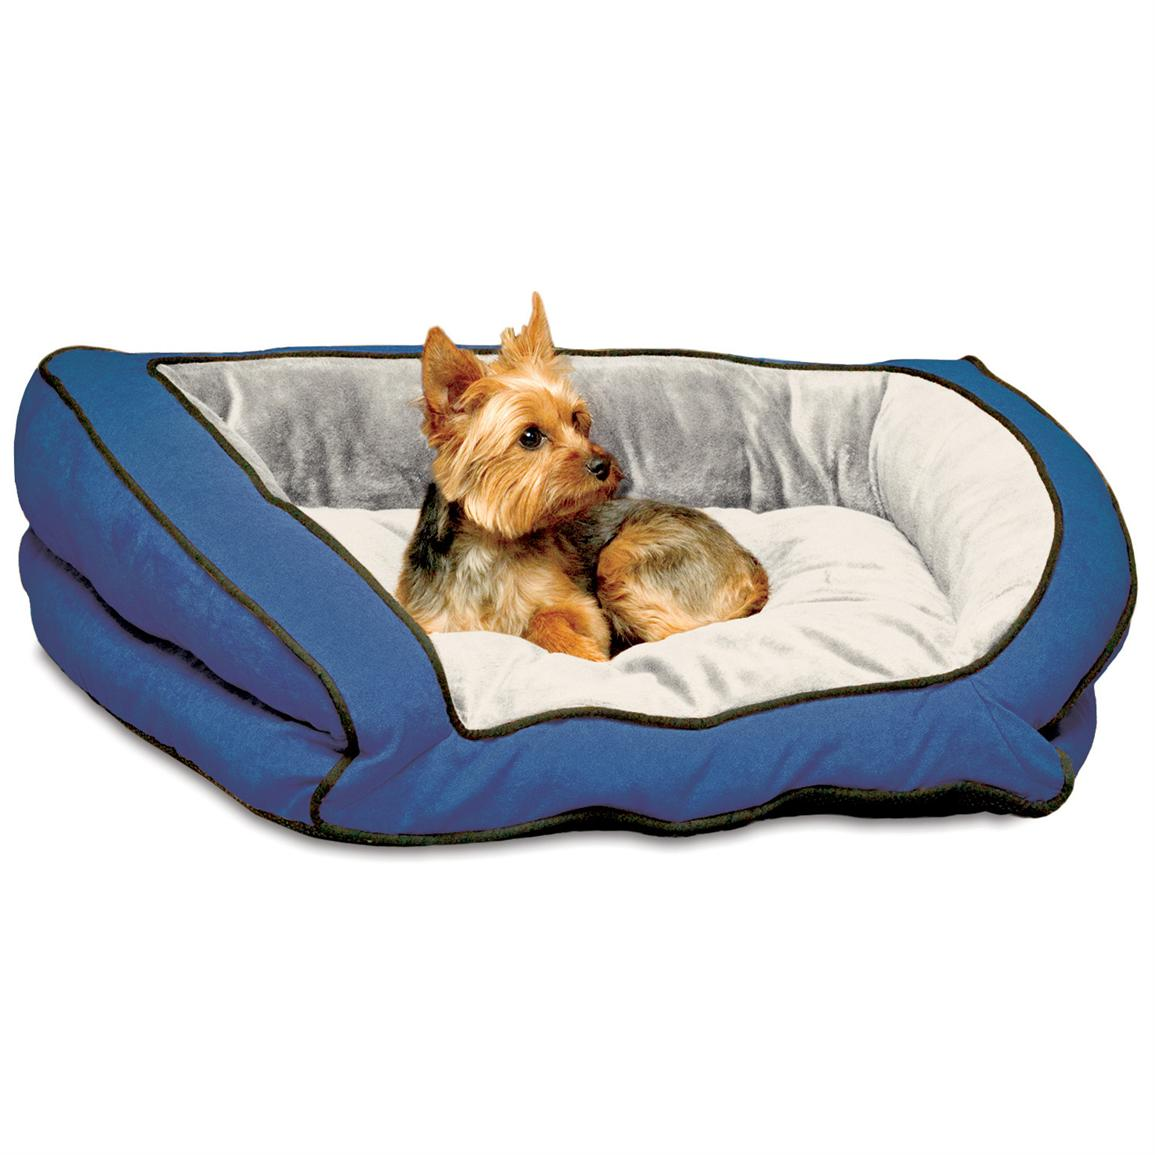 K&H™ Pet Products Bolster Couch, Blue / Grey - Small